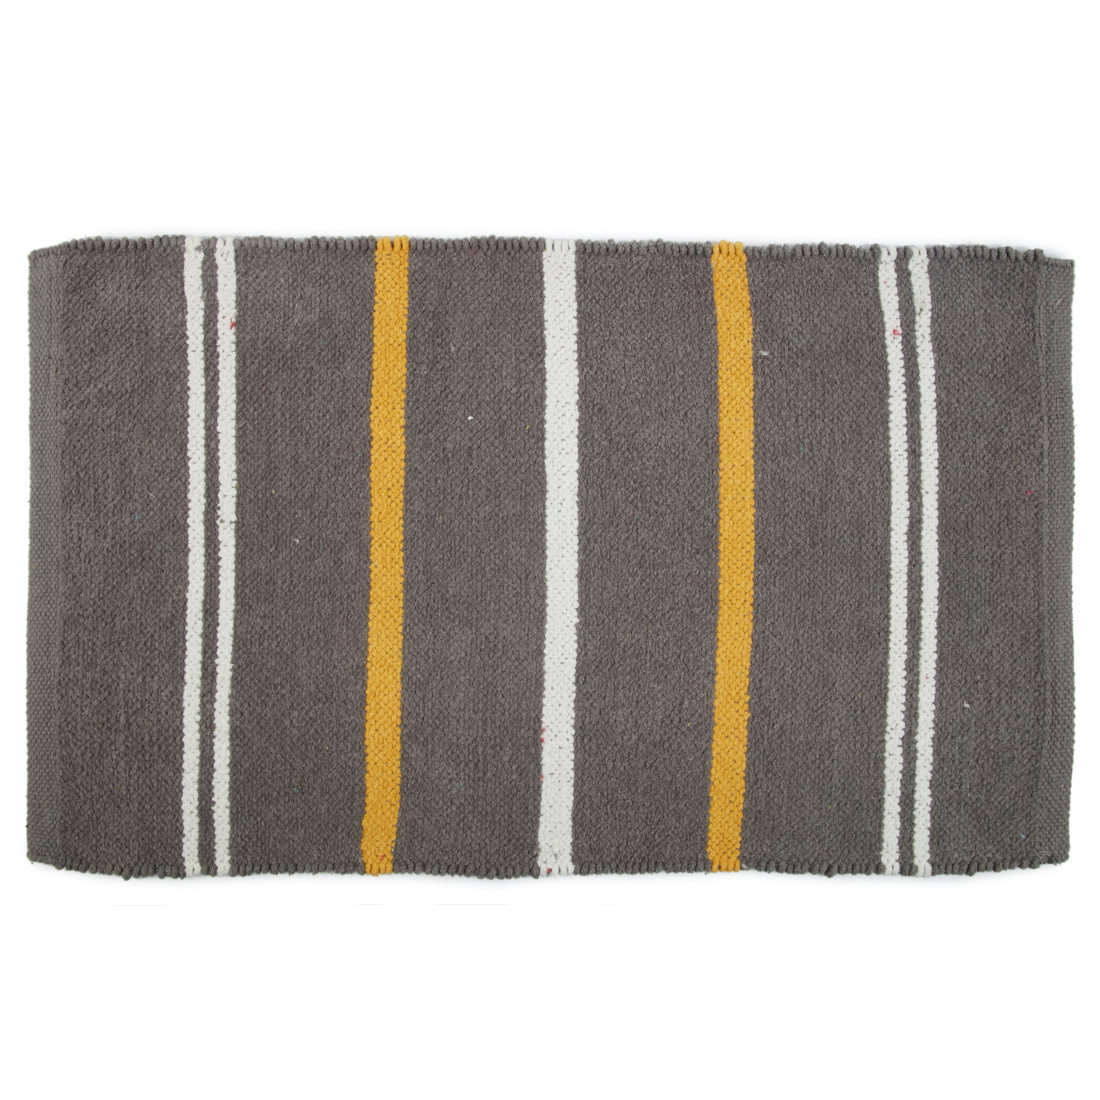 Emilia Dhurrie Grey Chenille Bath Mats in Grey Colour by Living Essence